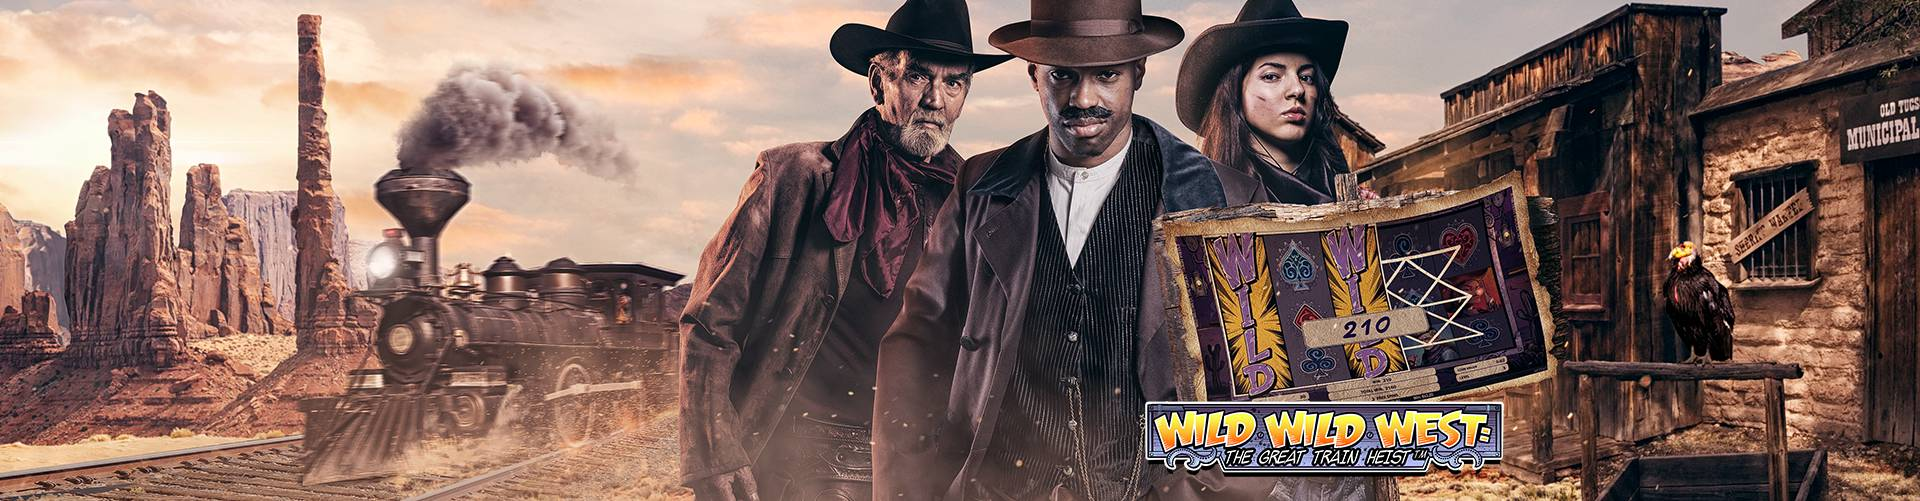 Wild Wilst West: The Great Rain Heist slot mobile NetEnt Wild Sultan NetEnt Casino